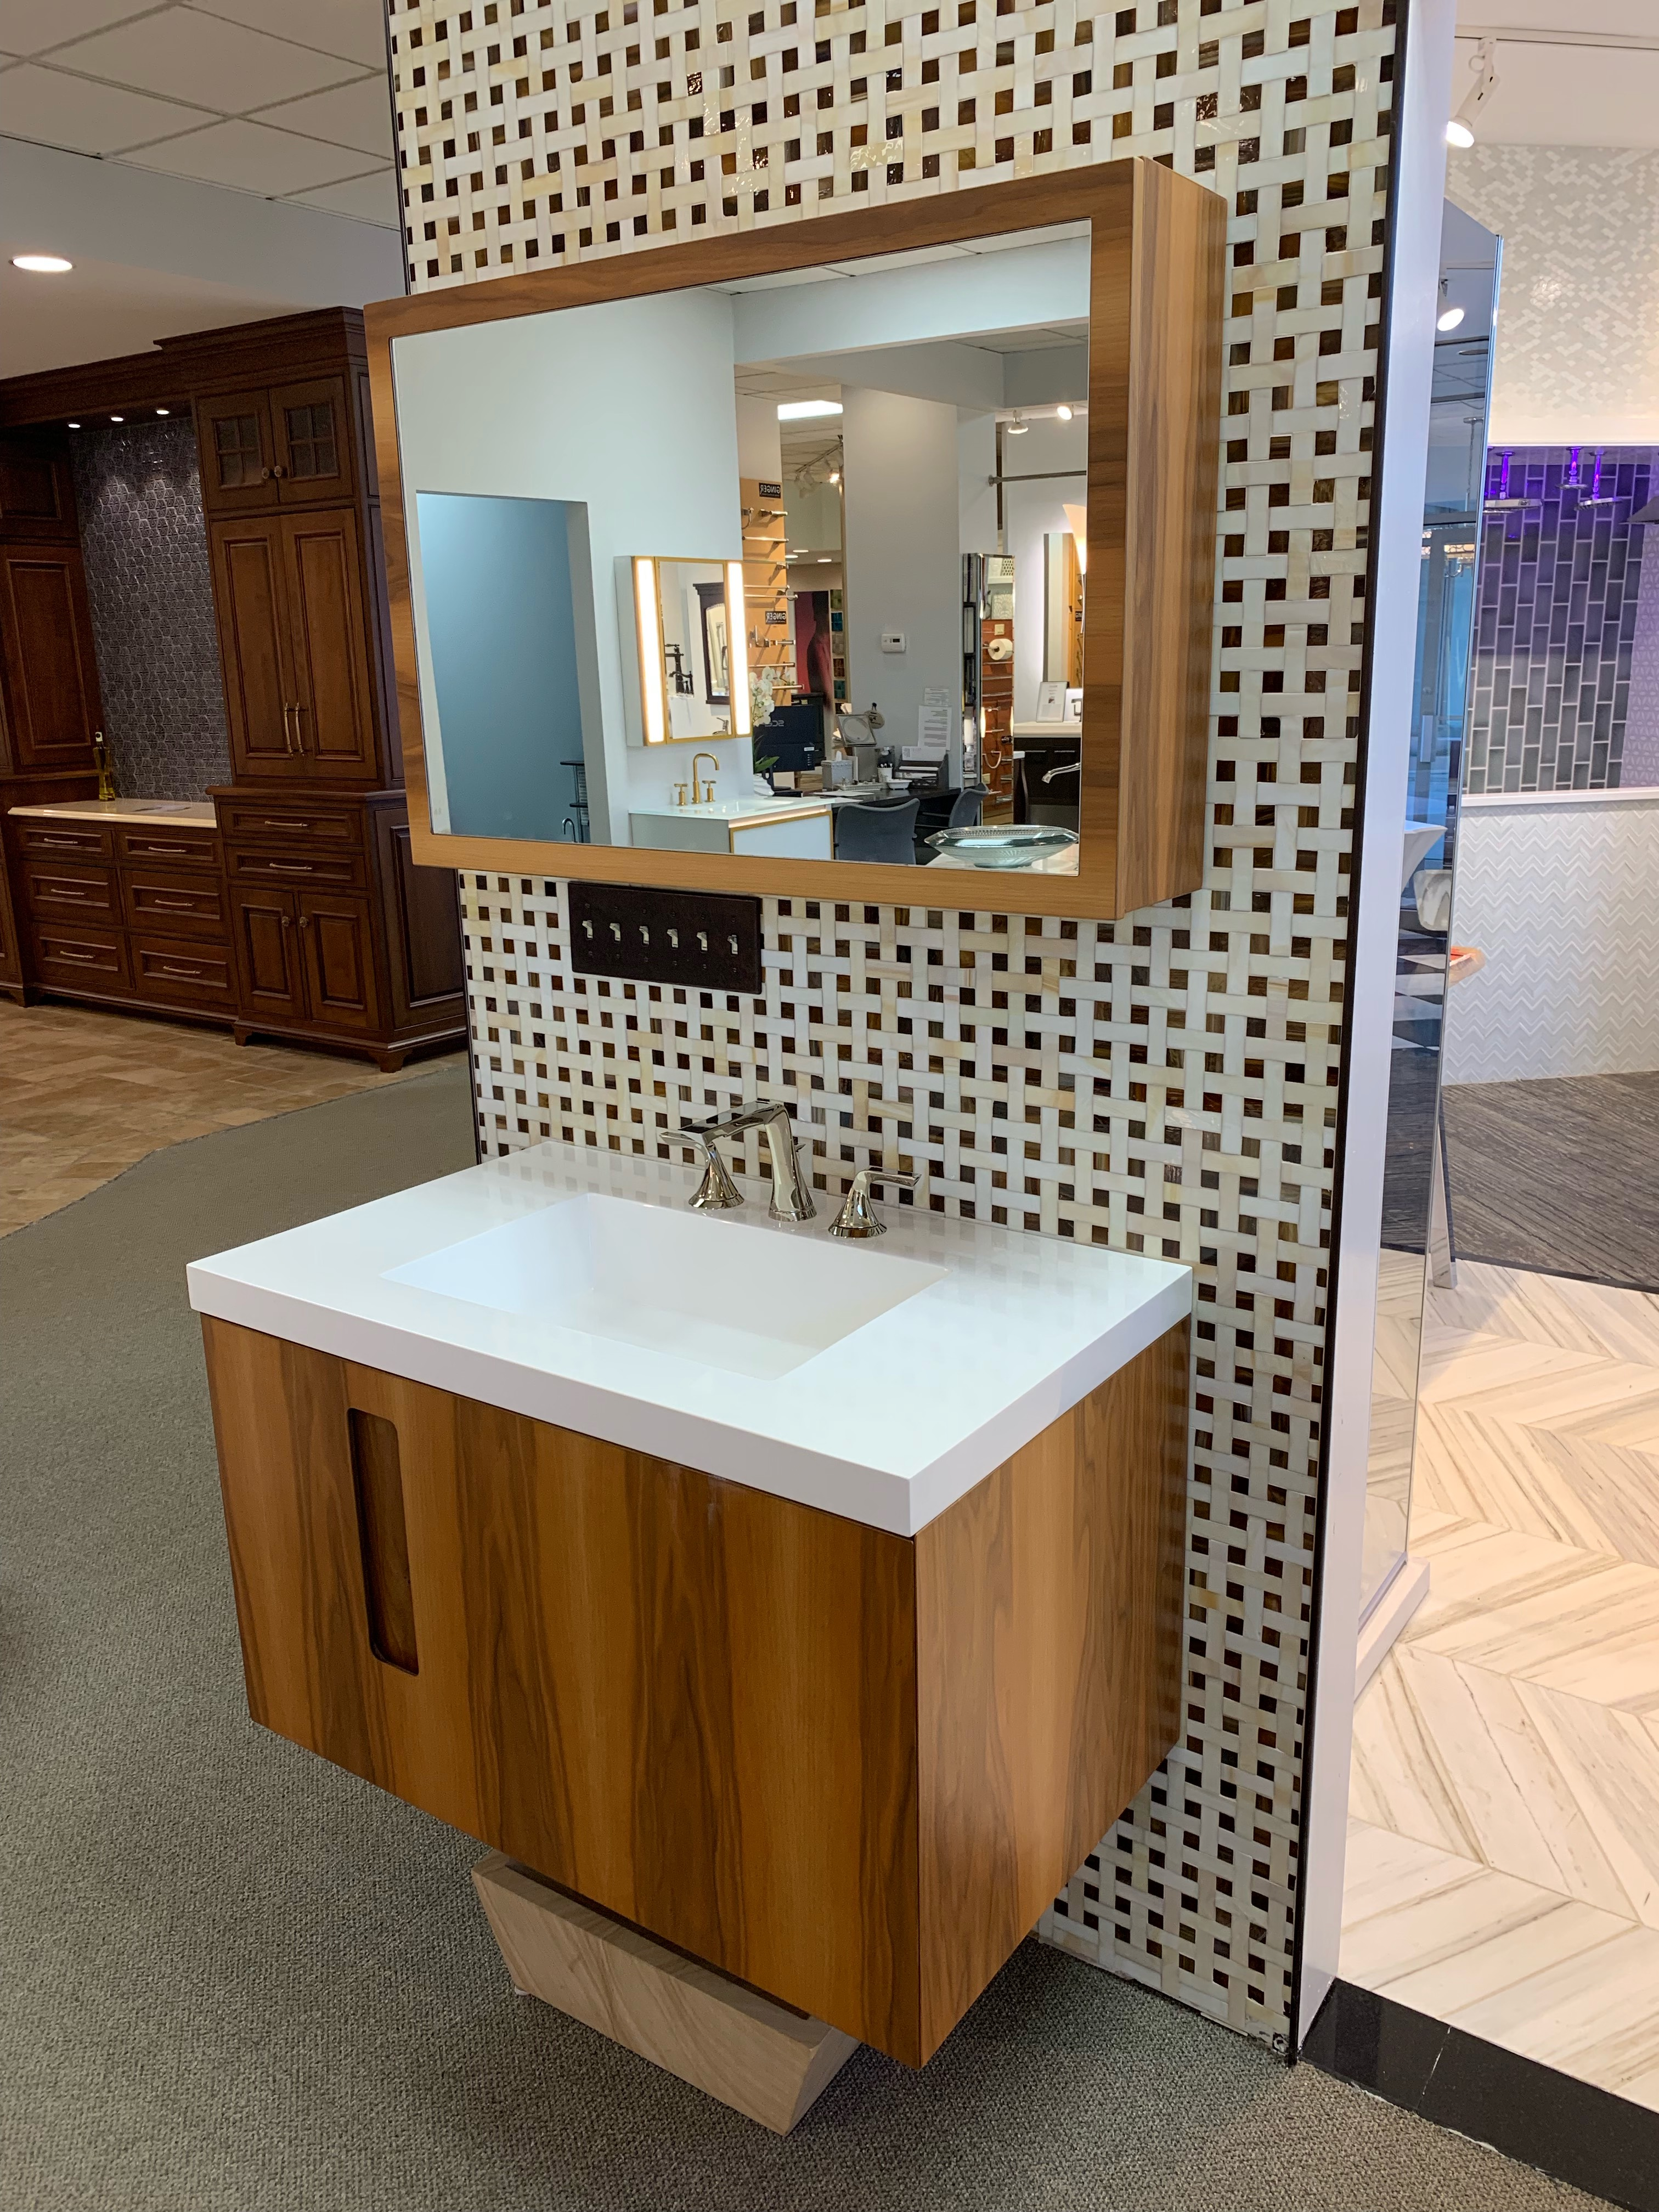 36×24 Furniture Guild Wall Lift Up Wall Hung Mirrored Medicine Cabinet